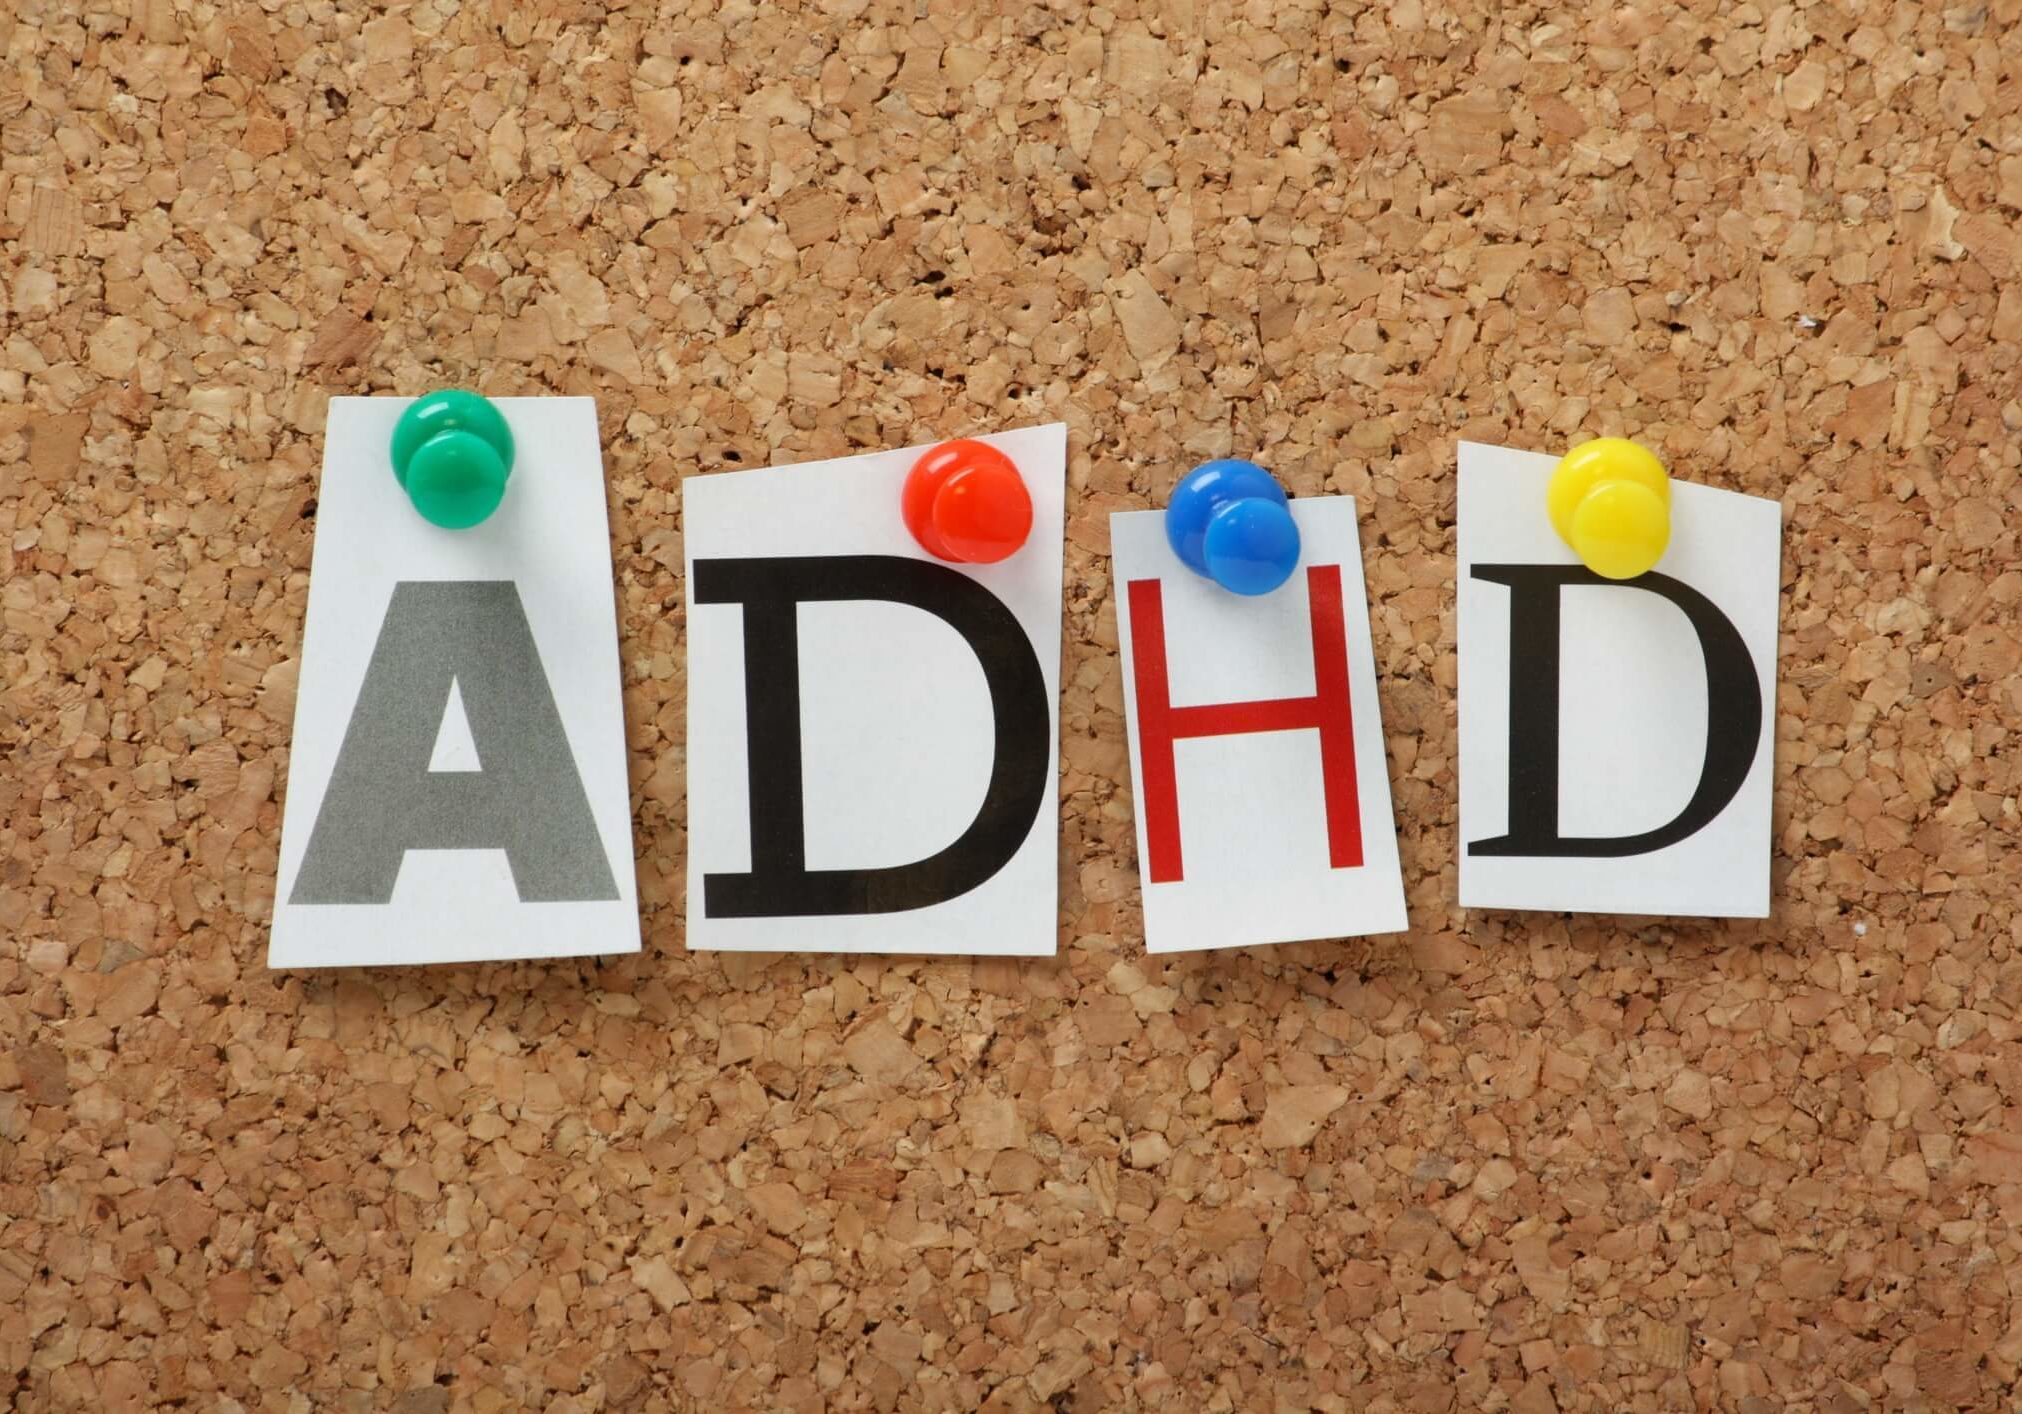 Alternative Explanations to ADHD